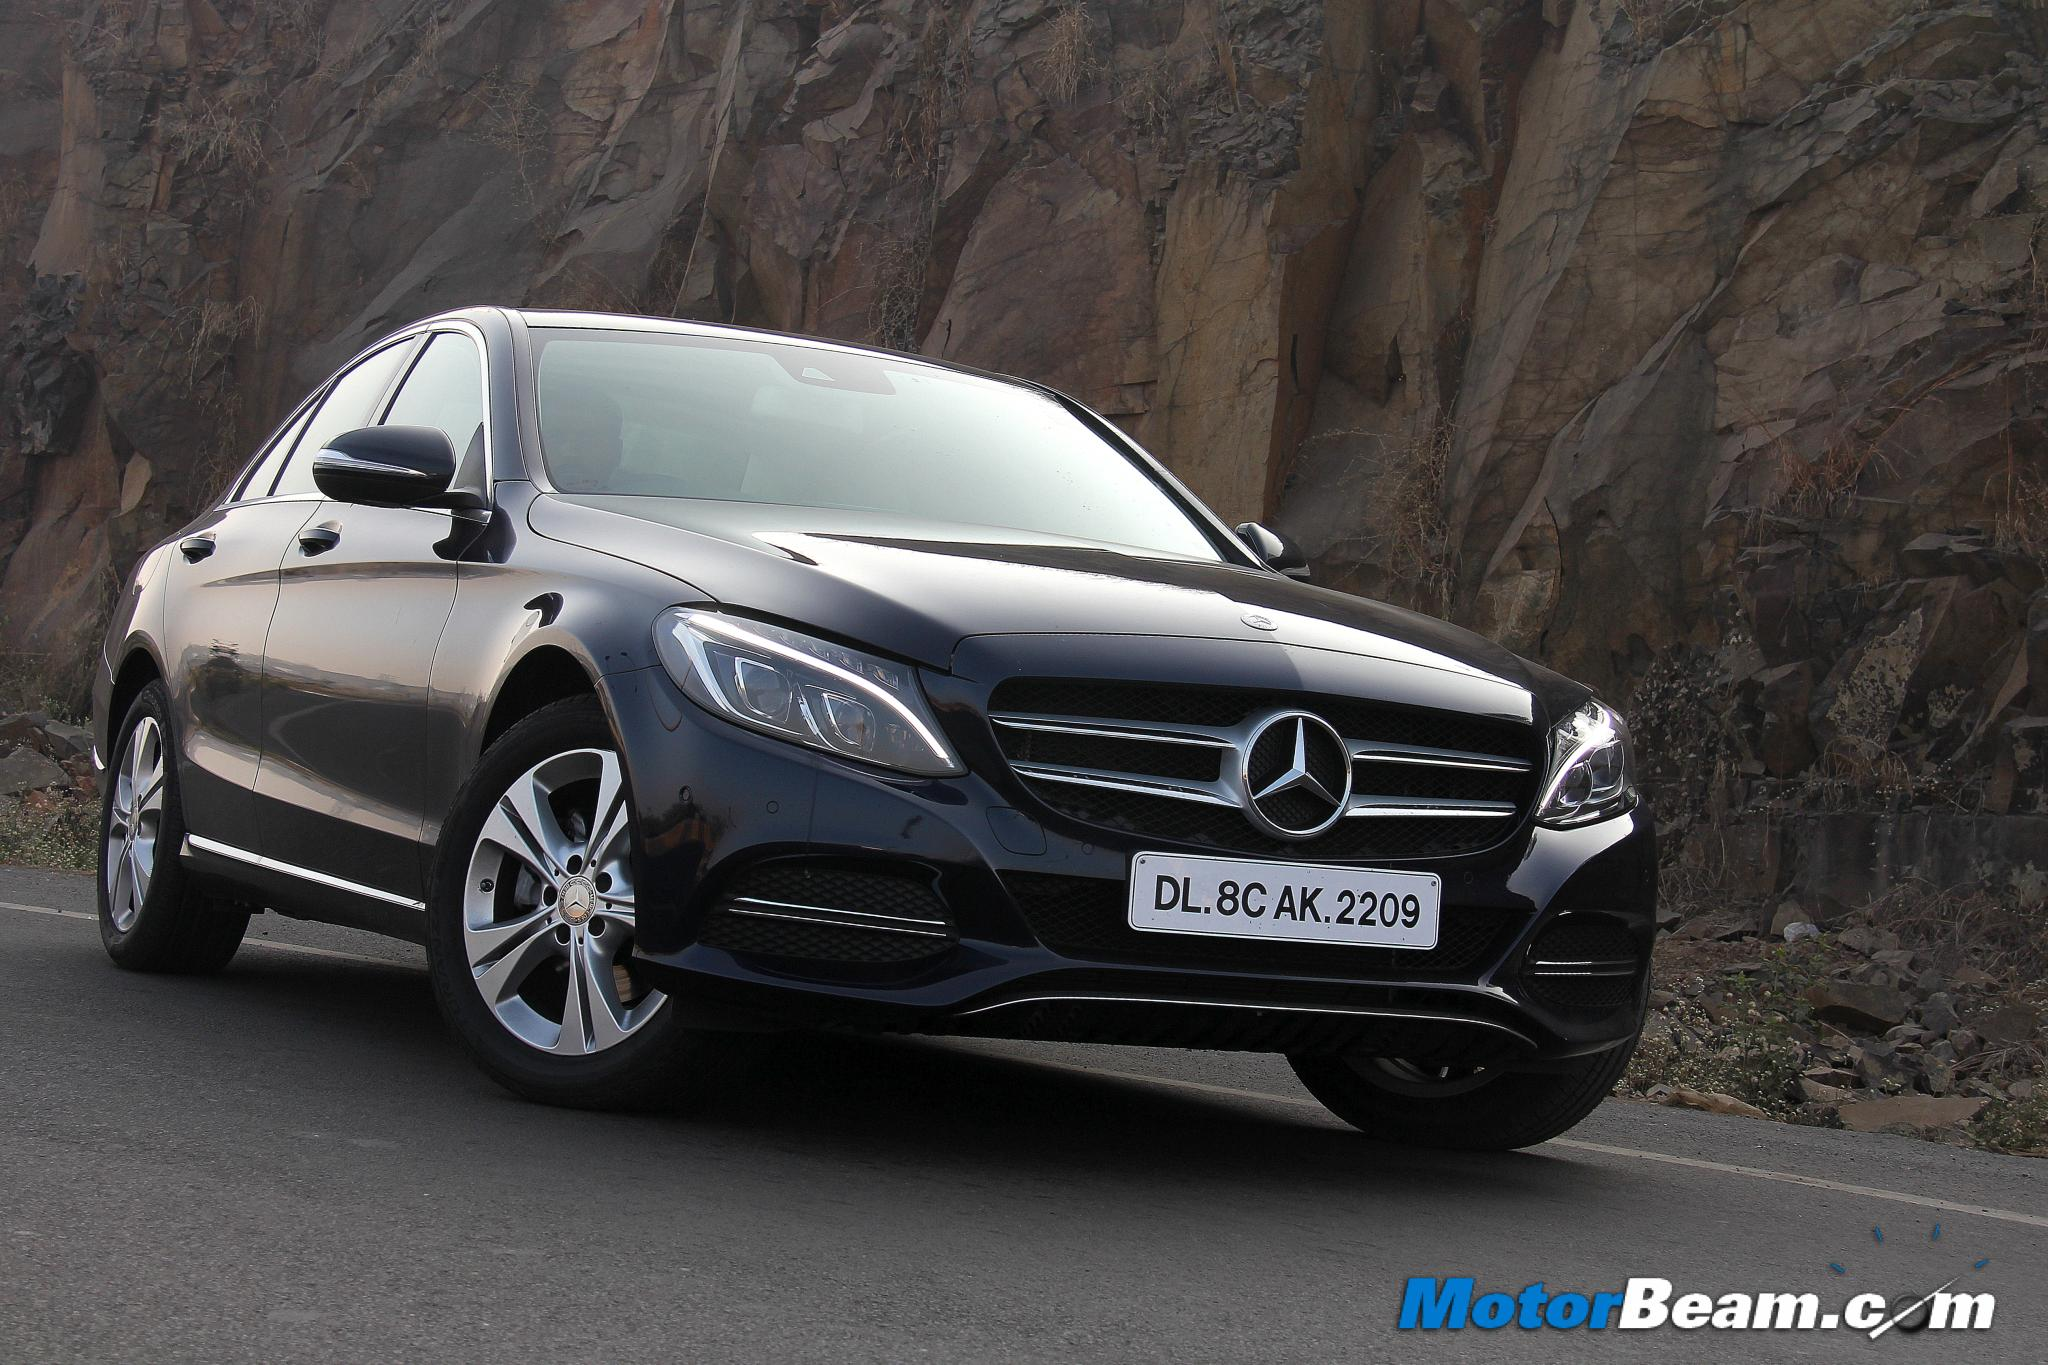 2015 Mercedes C-Class Diesel Test Drive Review